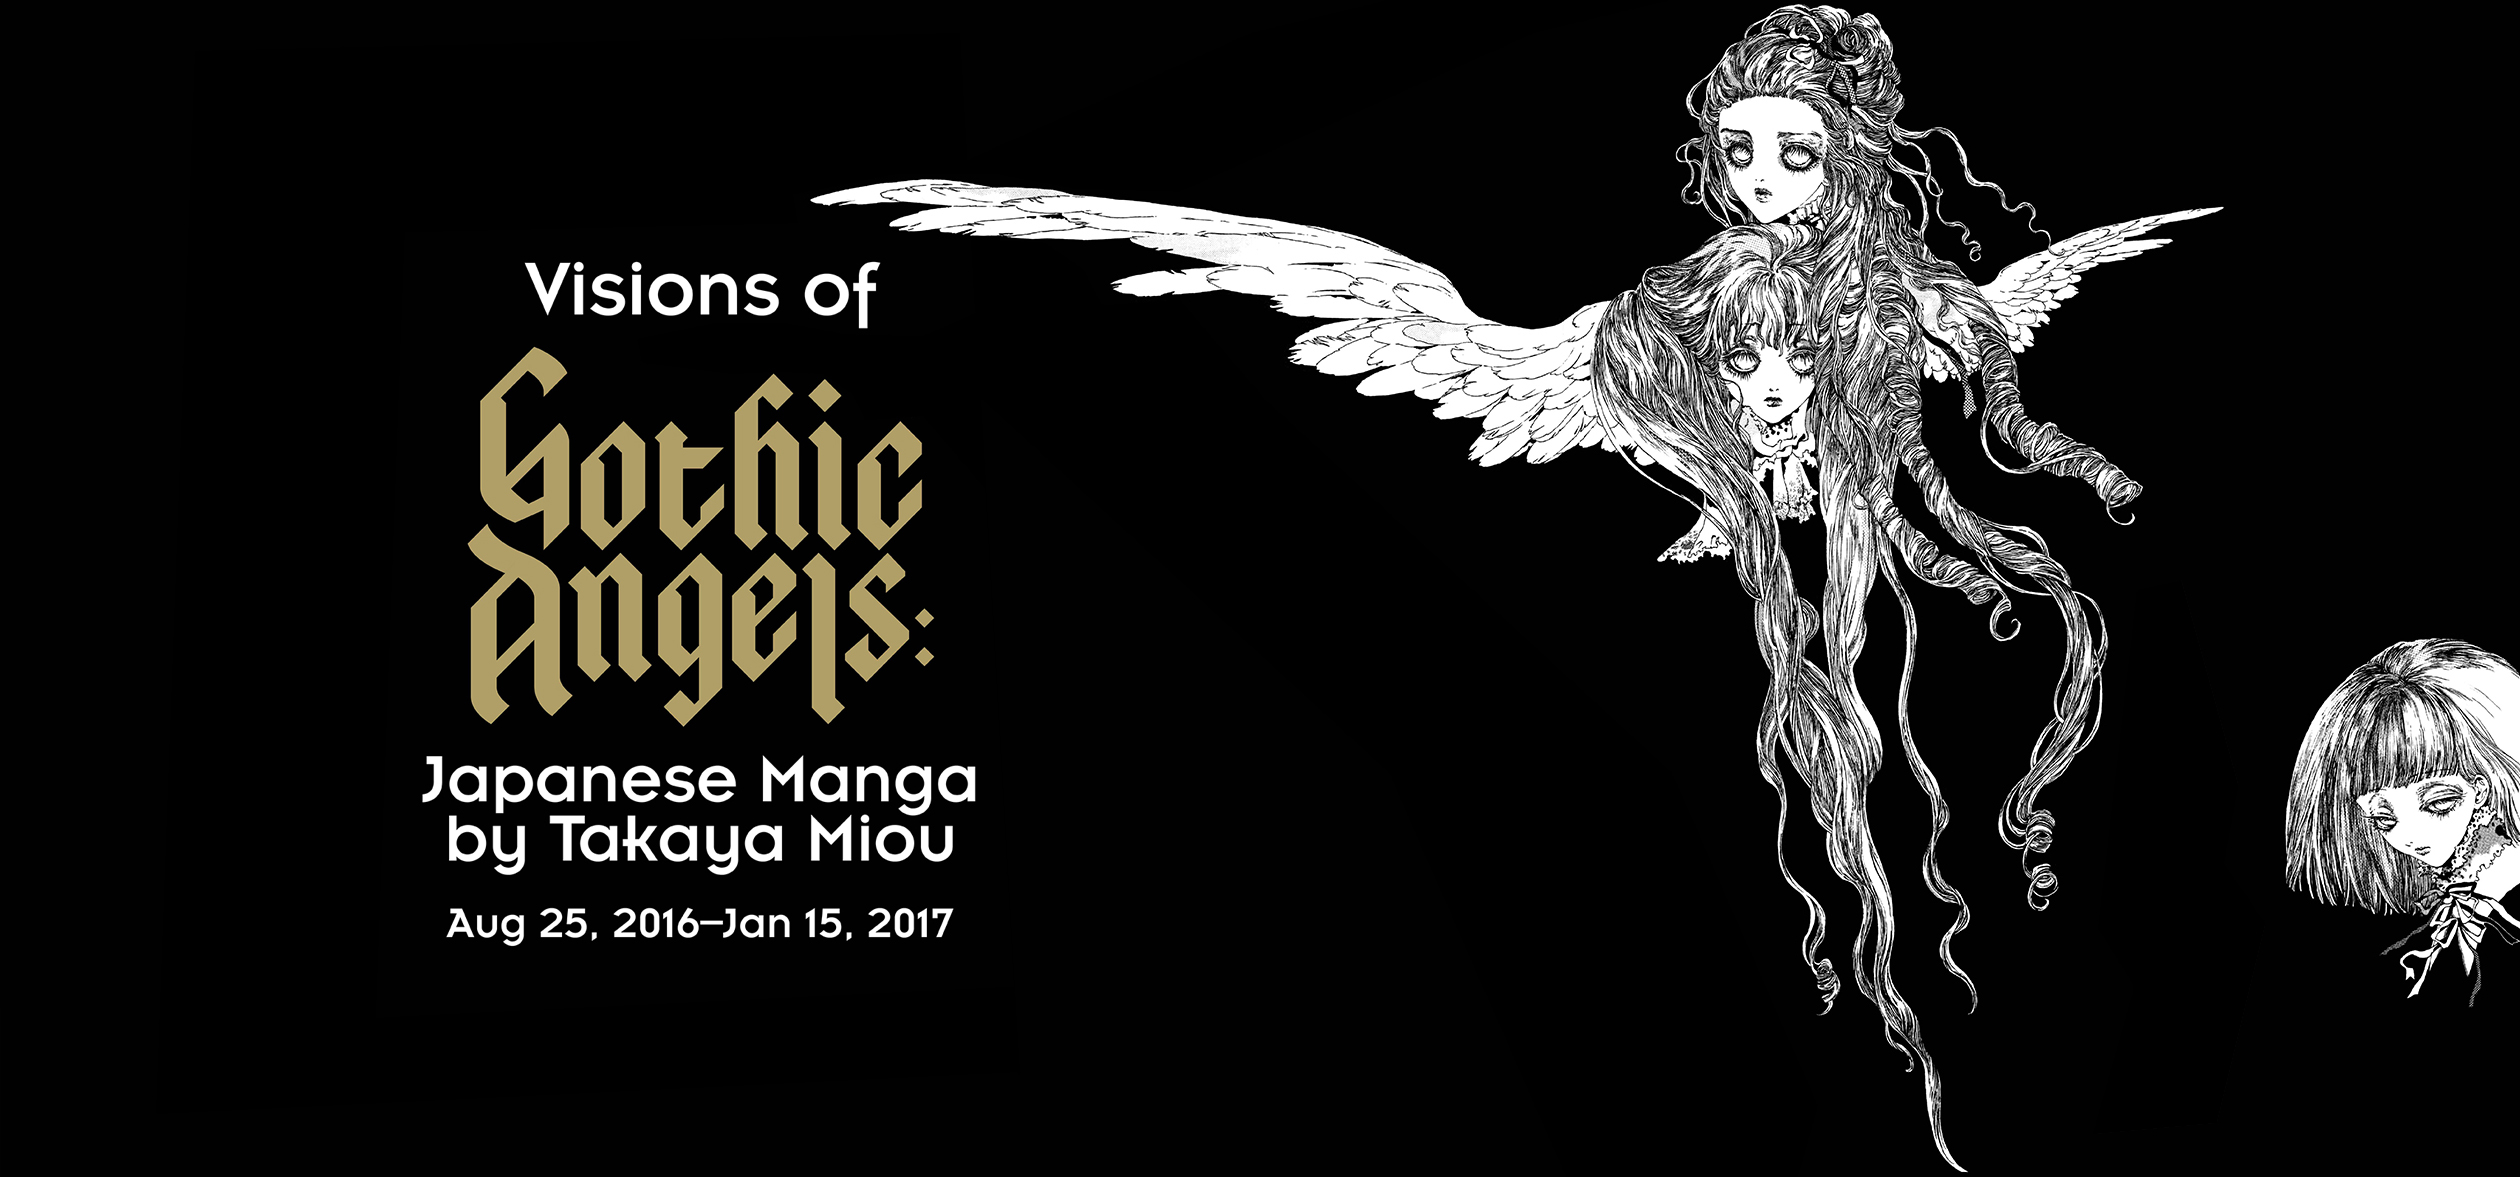 Visions of Gothic Angels: Japanese Manga by Takaya Miou